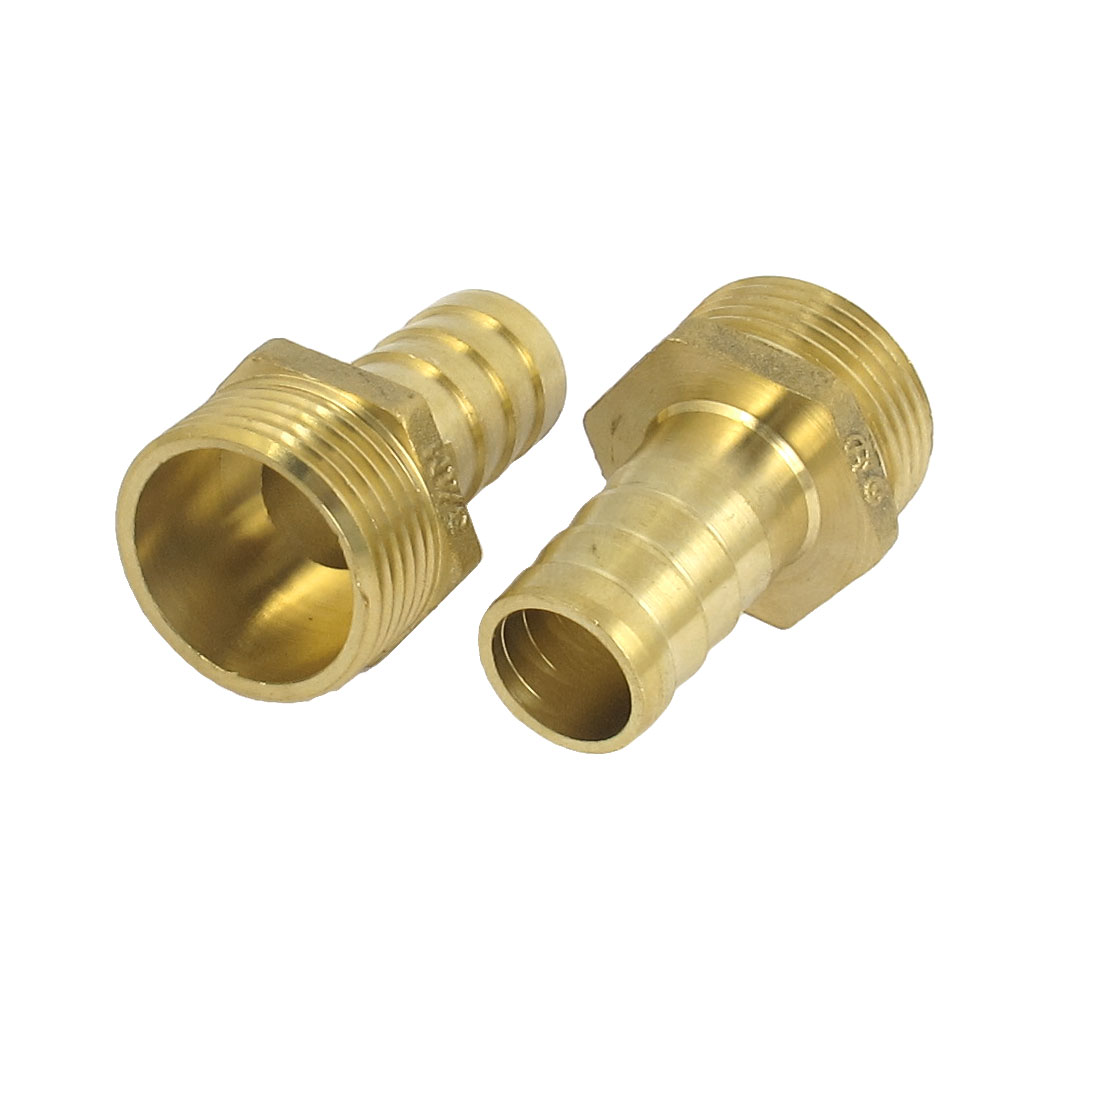 Brass 3/4BSP Male Thread to 16mm Hose Barb Straight Fitting Adapter Coupler 2PCS